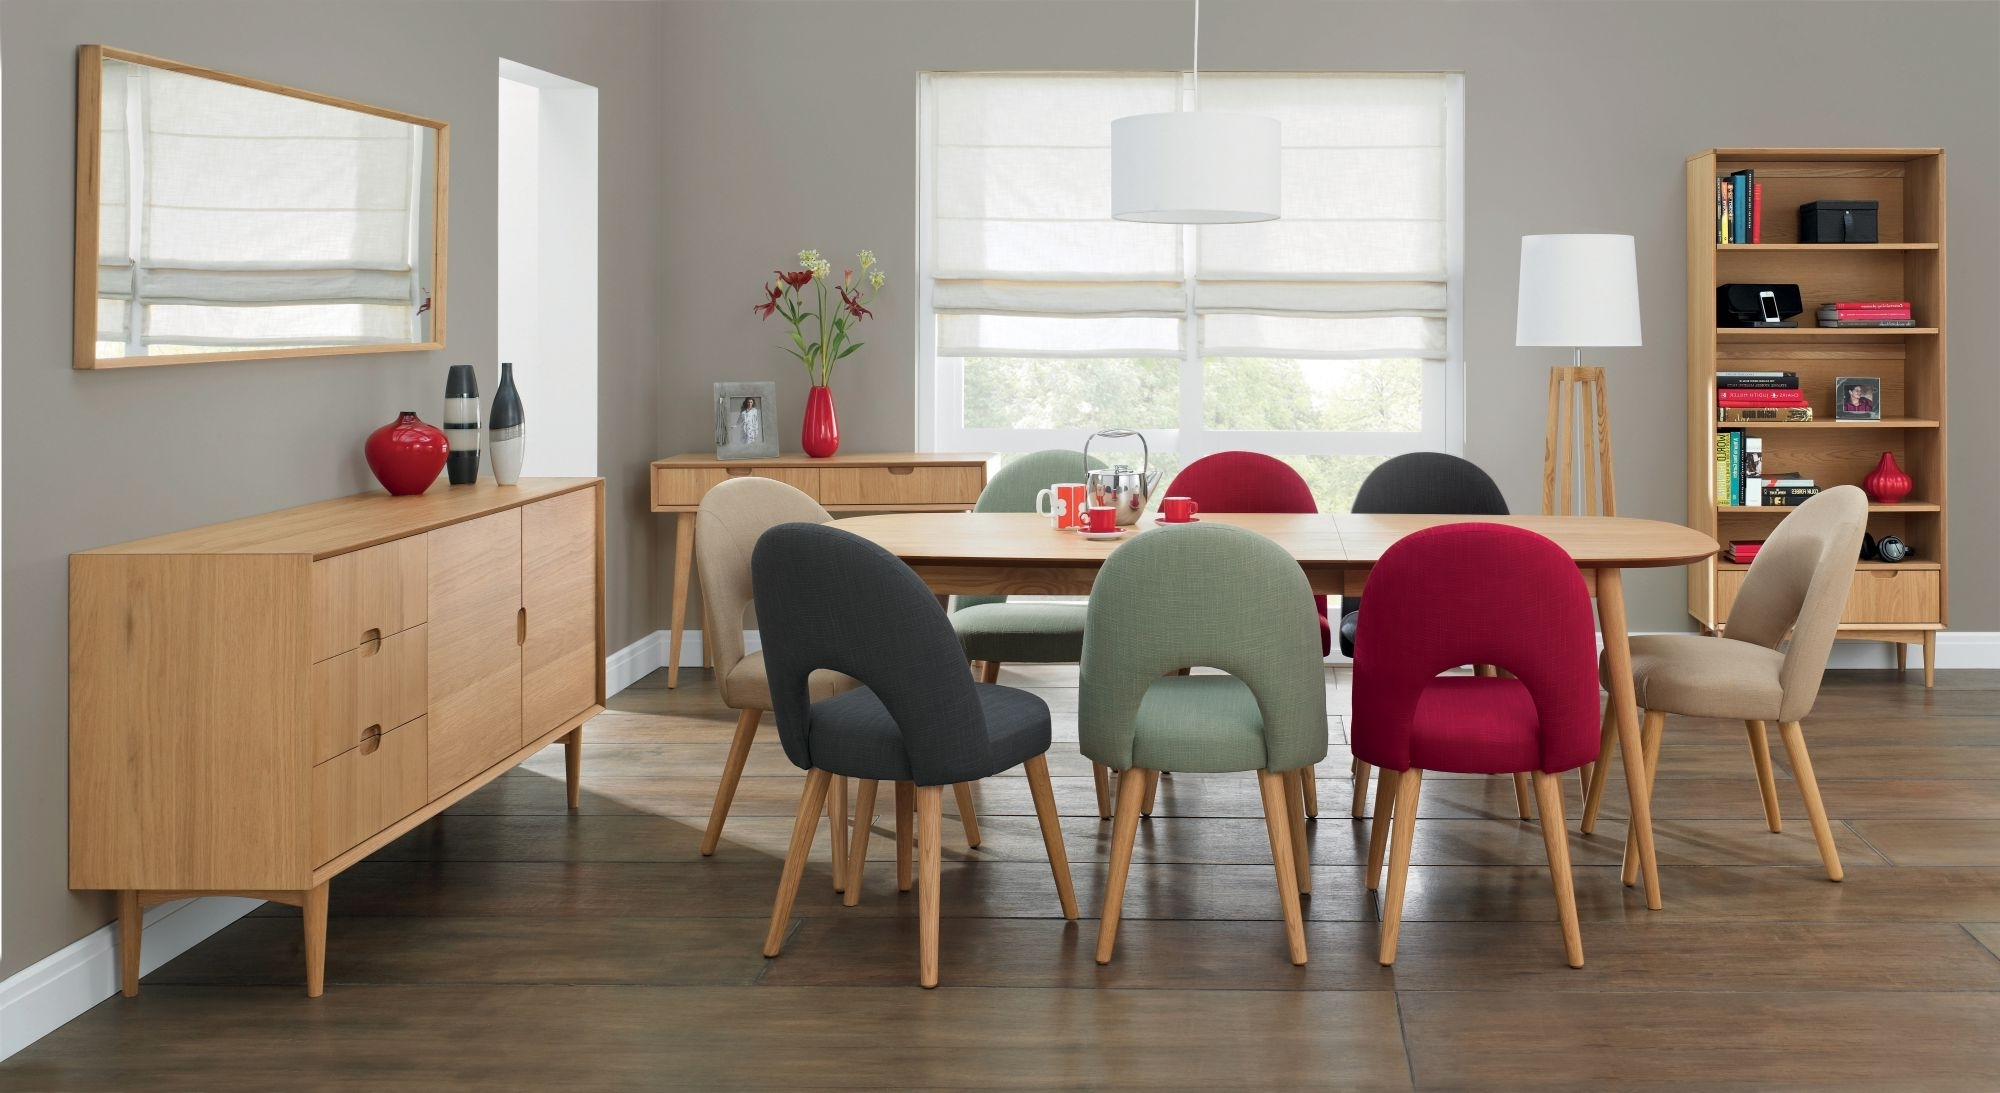 Bentley Designs Oslo Oak 6 Seater Dining Table & 6 Stone Fabric Throughout Best And Newest 8 Seat Dining Tables (View 23 of 25)